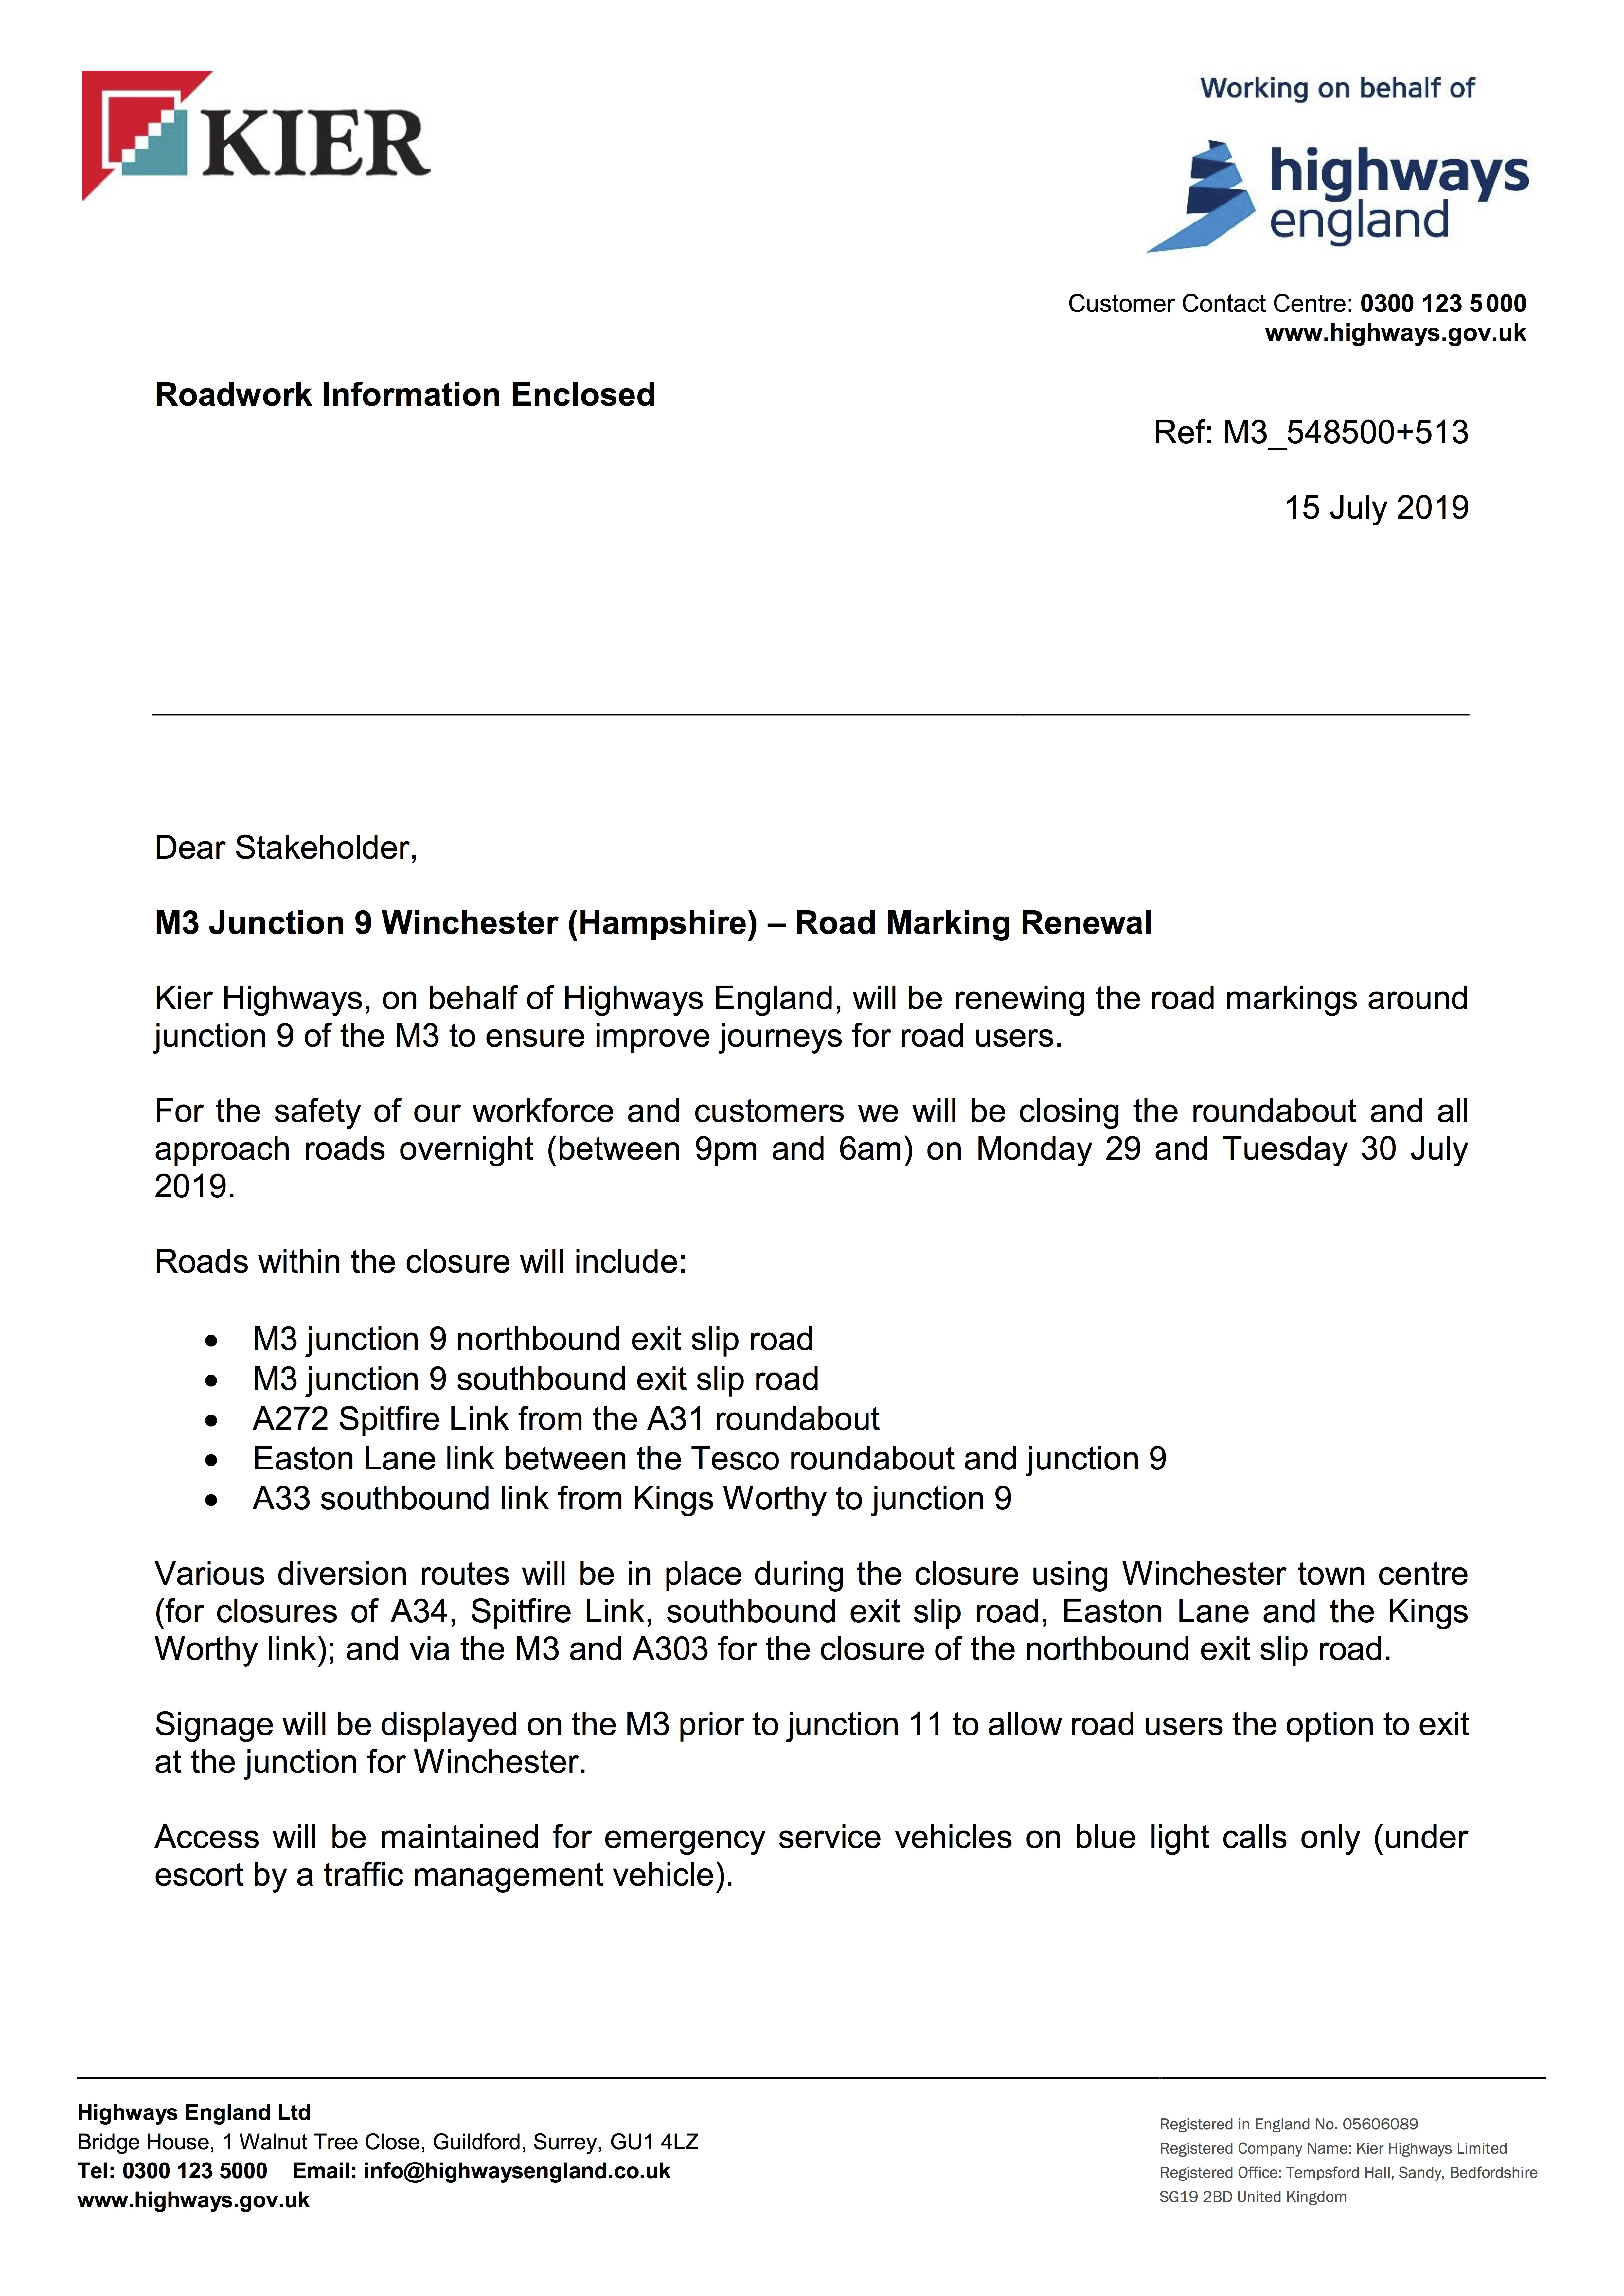 190716 M3 J9 Roundabout Stakeholder Letter